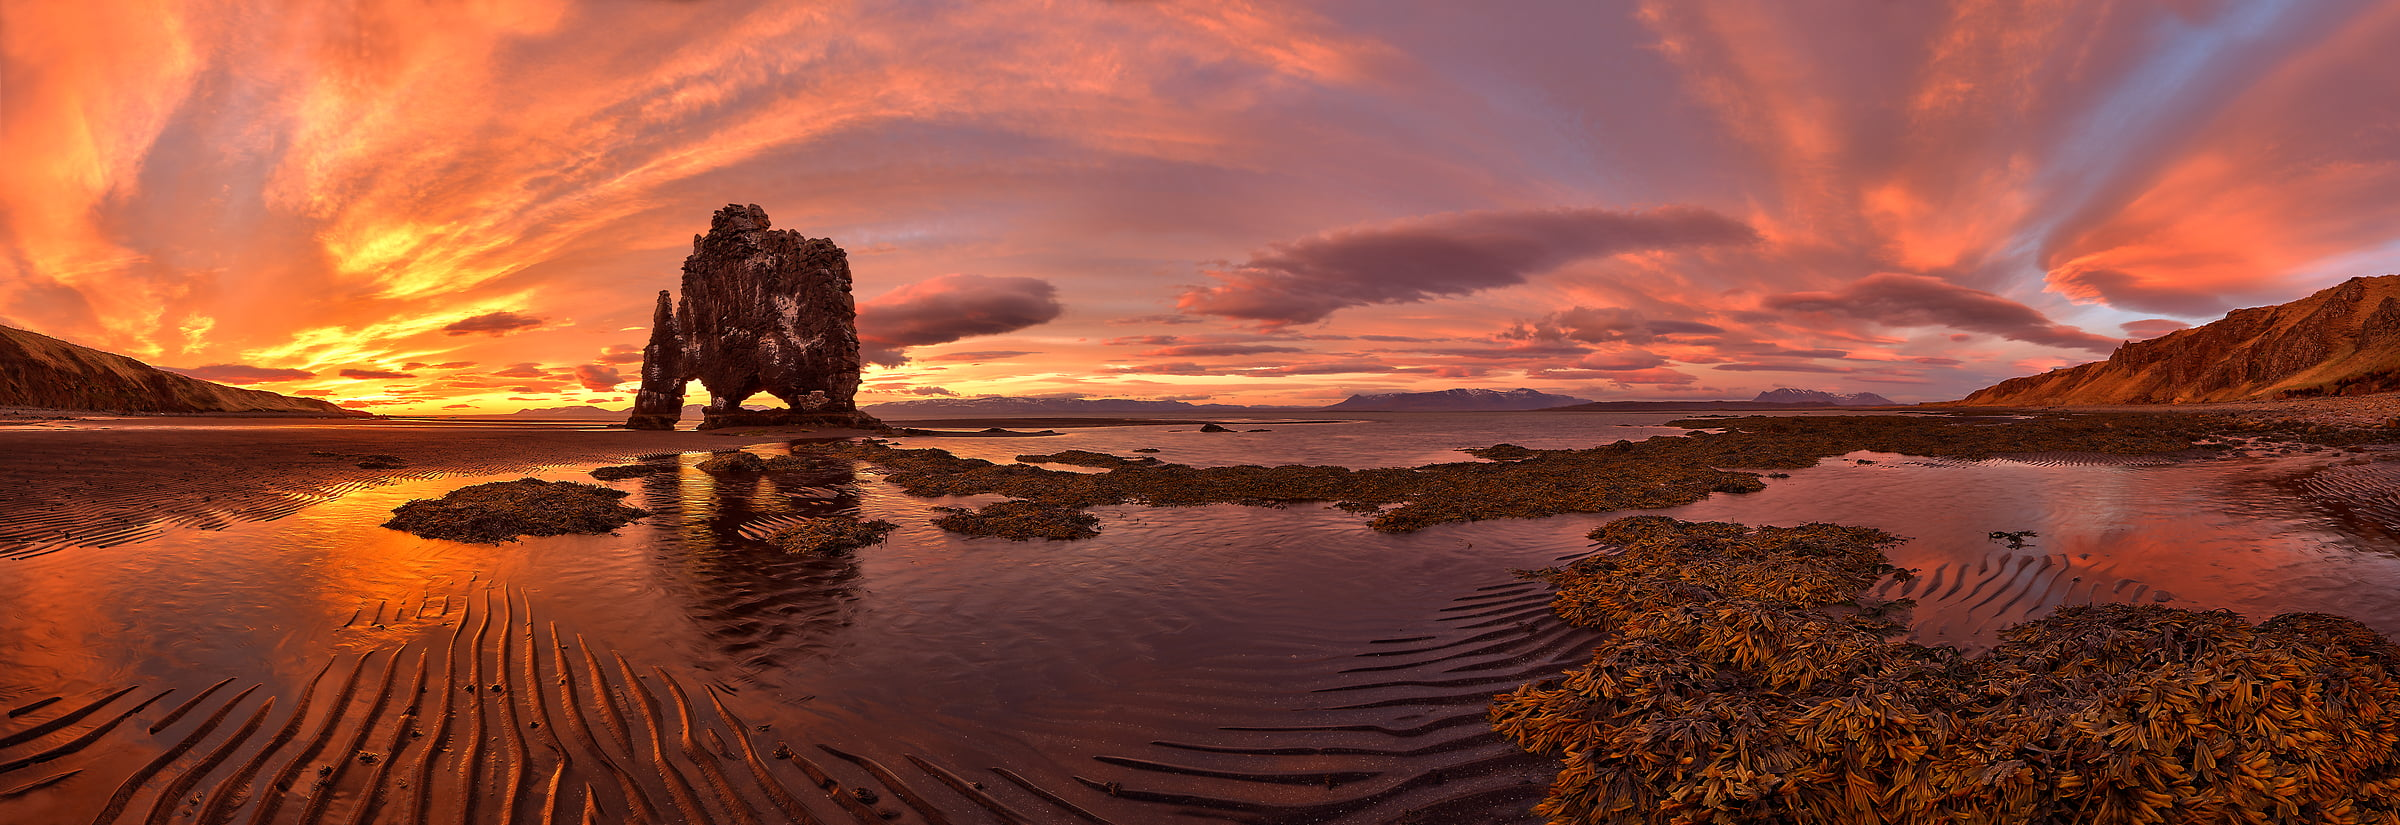 109 megapixels! A very high resolution, large-format VAST photo of sunset and sunrise on the water with a giant rock structure called Hvítserkur Monolith or Dinosaur Rock; fine art landscape photo created by Scott Dimond in the Northwestern Region of Iceland